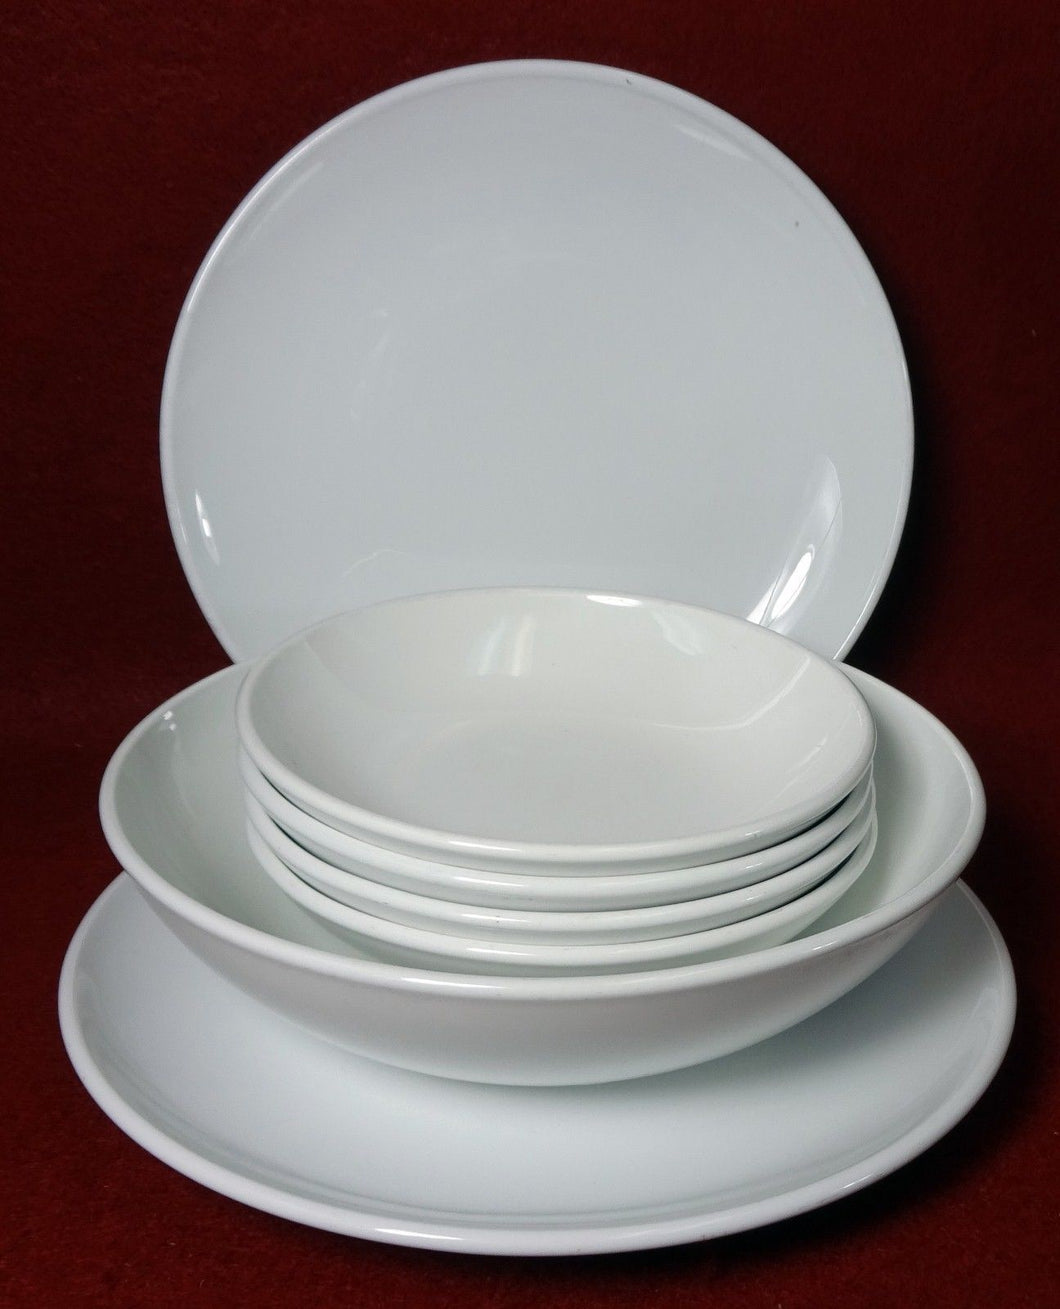 CORNING Pyroceram WHITE COUPE pattern 7-Piece Lot 2 bread 4 fruit 1 cereal bowl